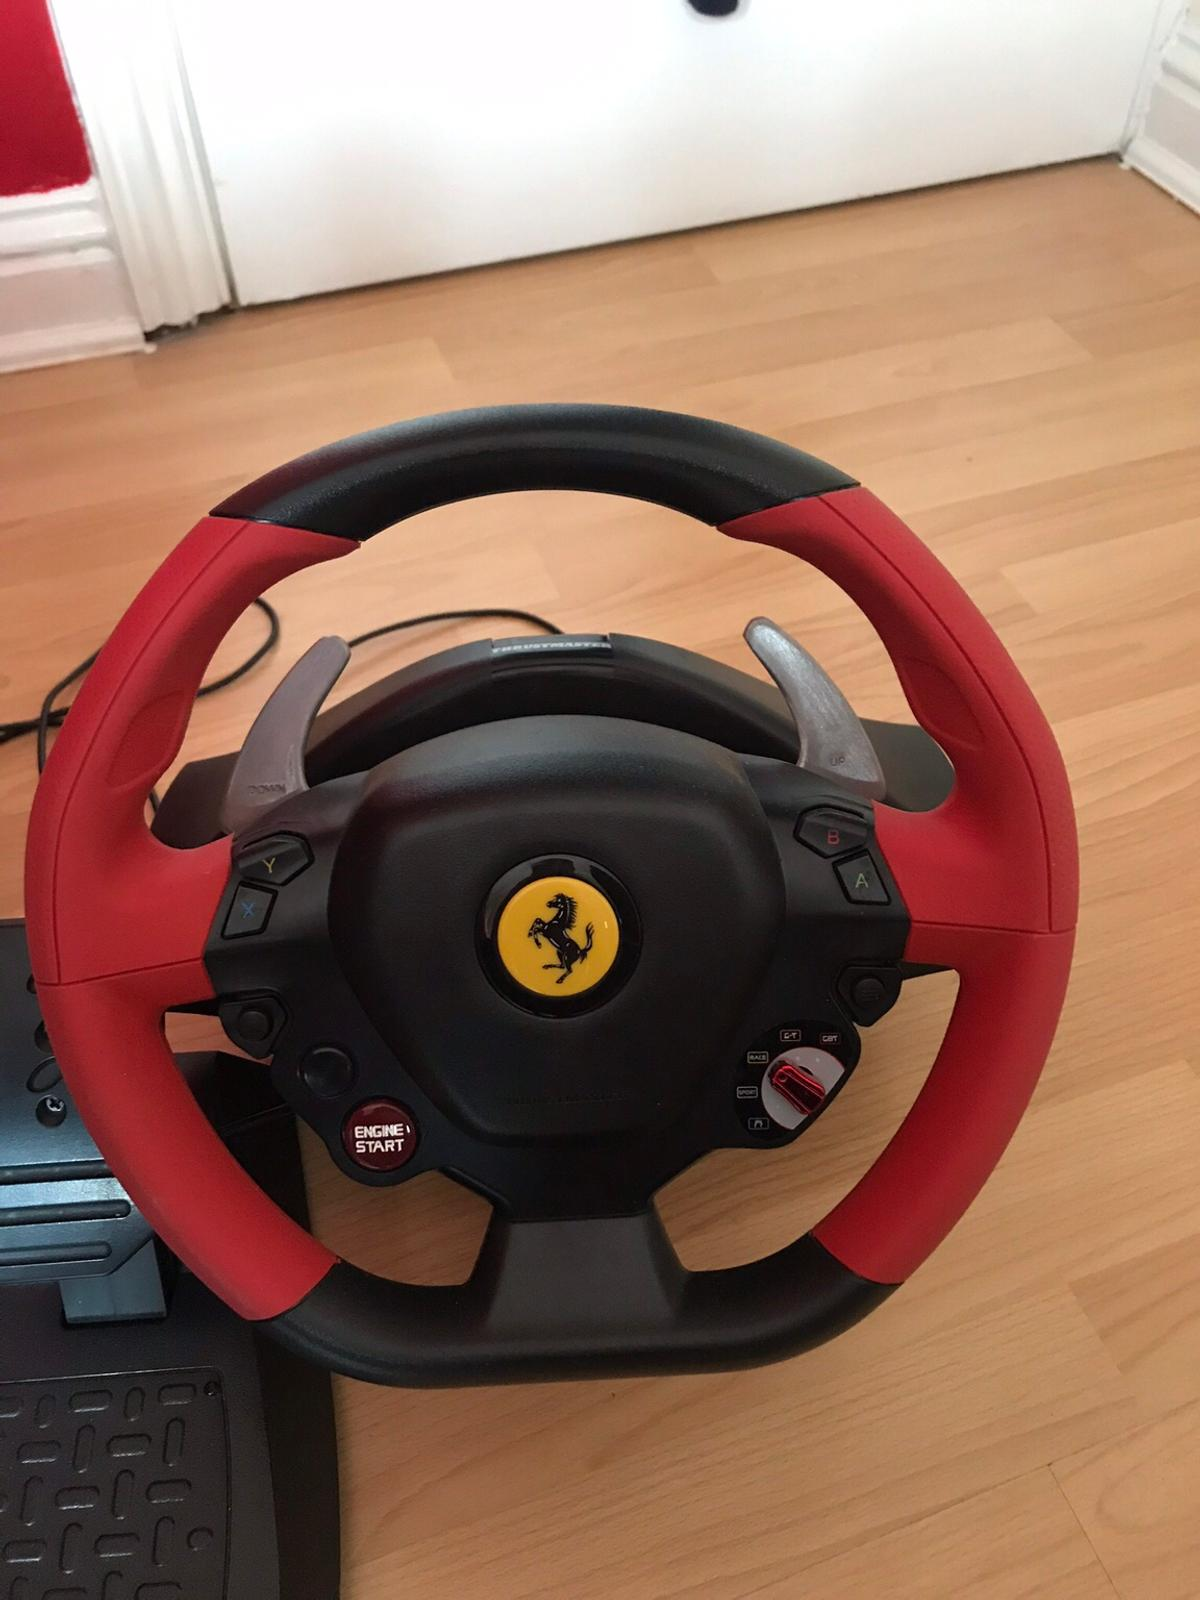 8edd3377fda Xbox racing wheel in BS37 Chipping Sodbury for £40.00 for sale - Shpock